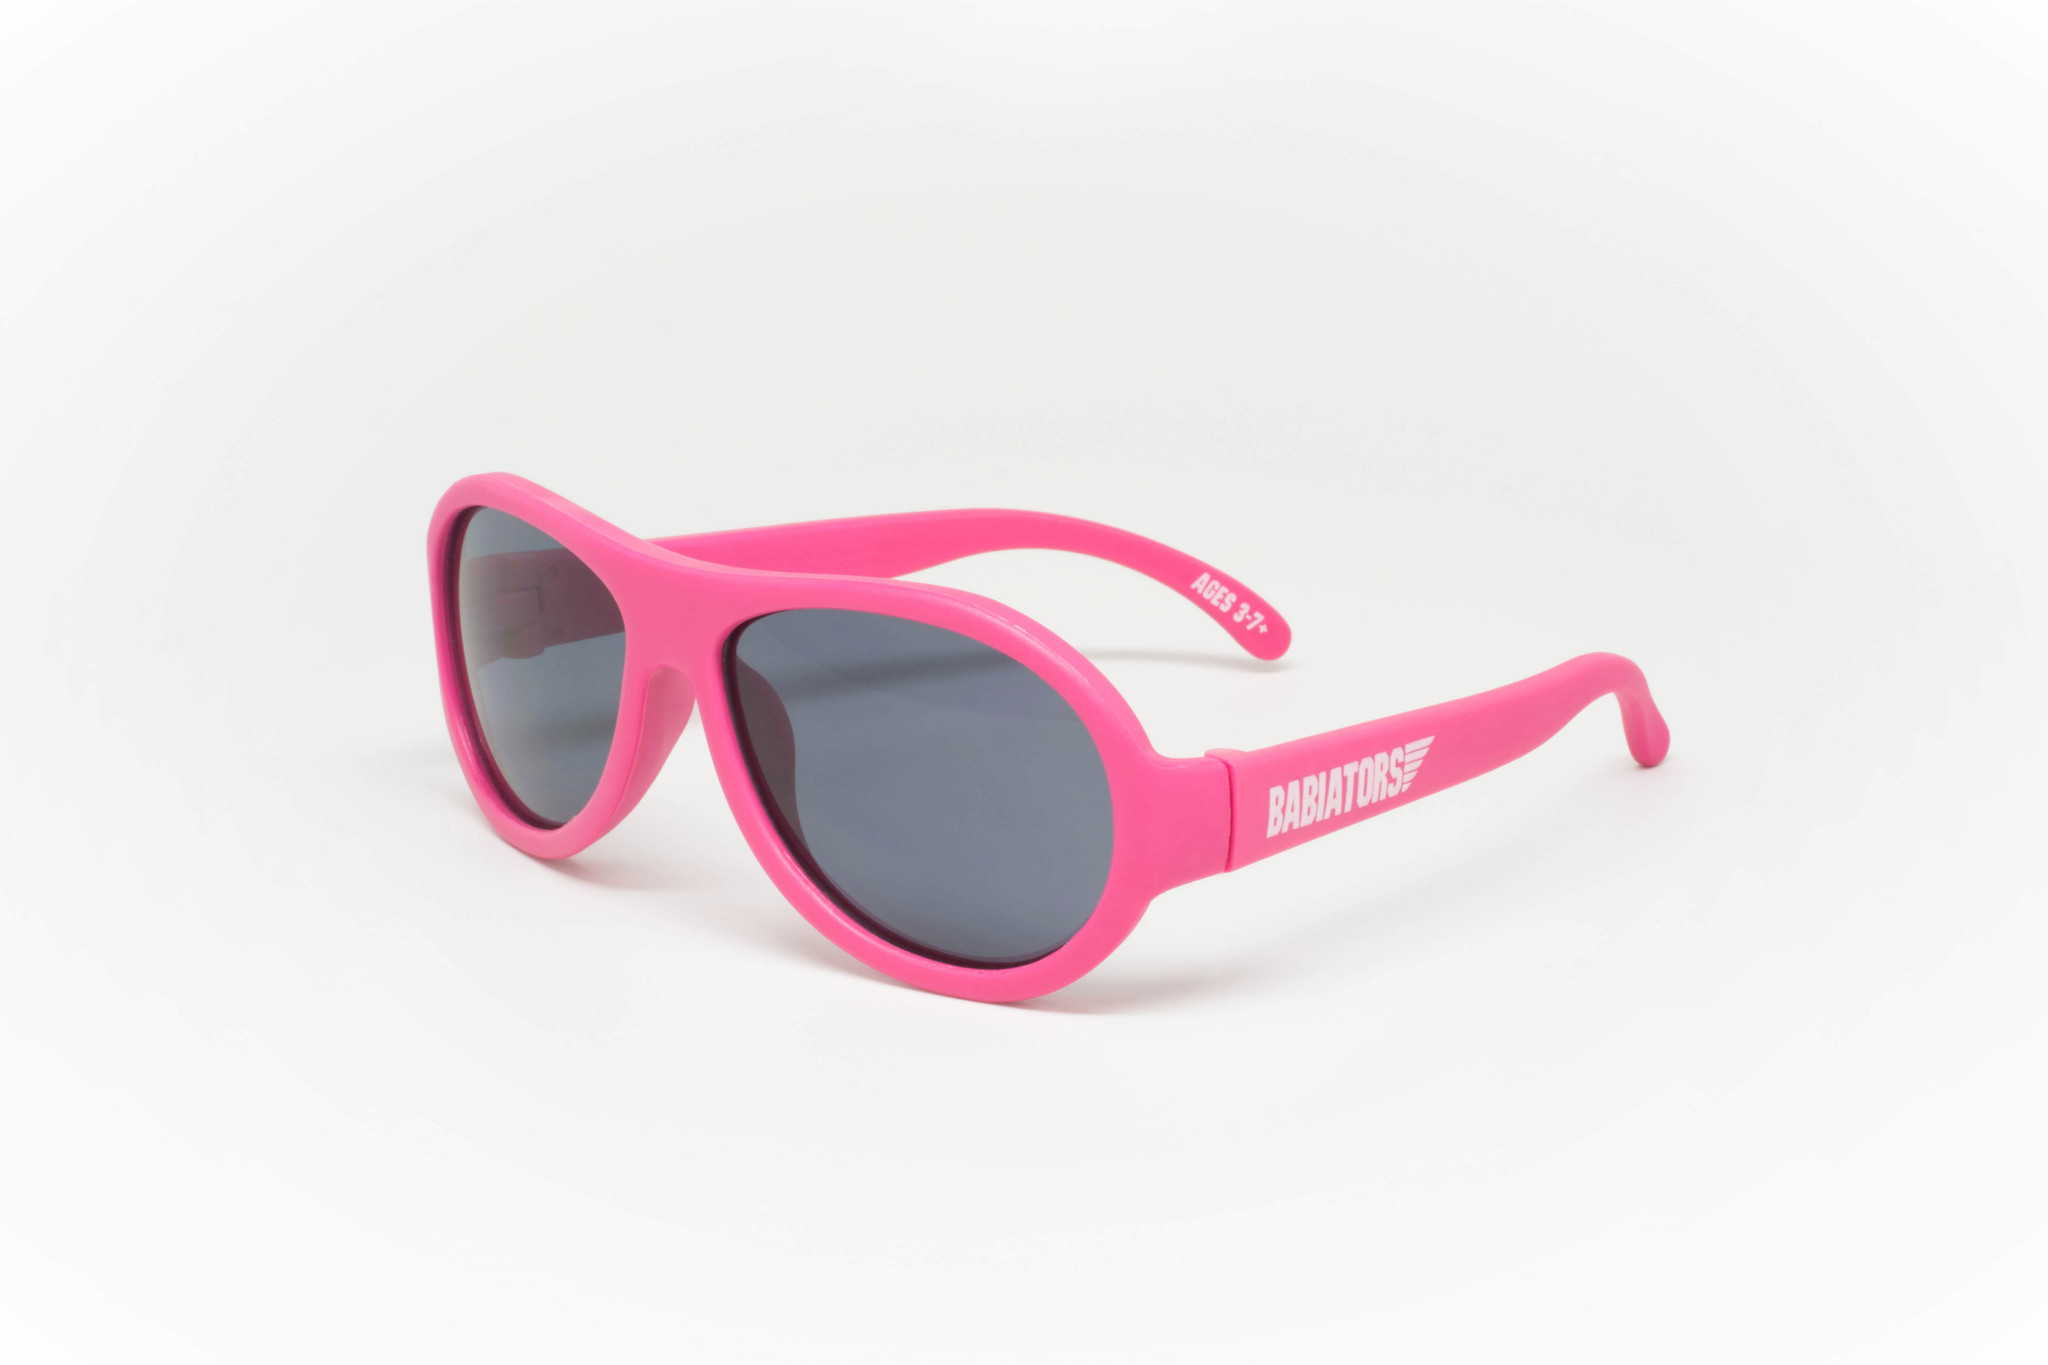 Babiators Sunglasses - Popstar Pink